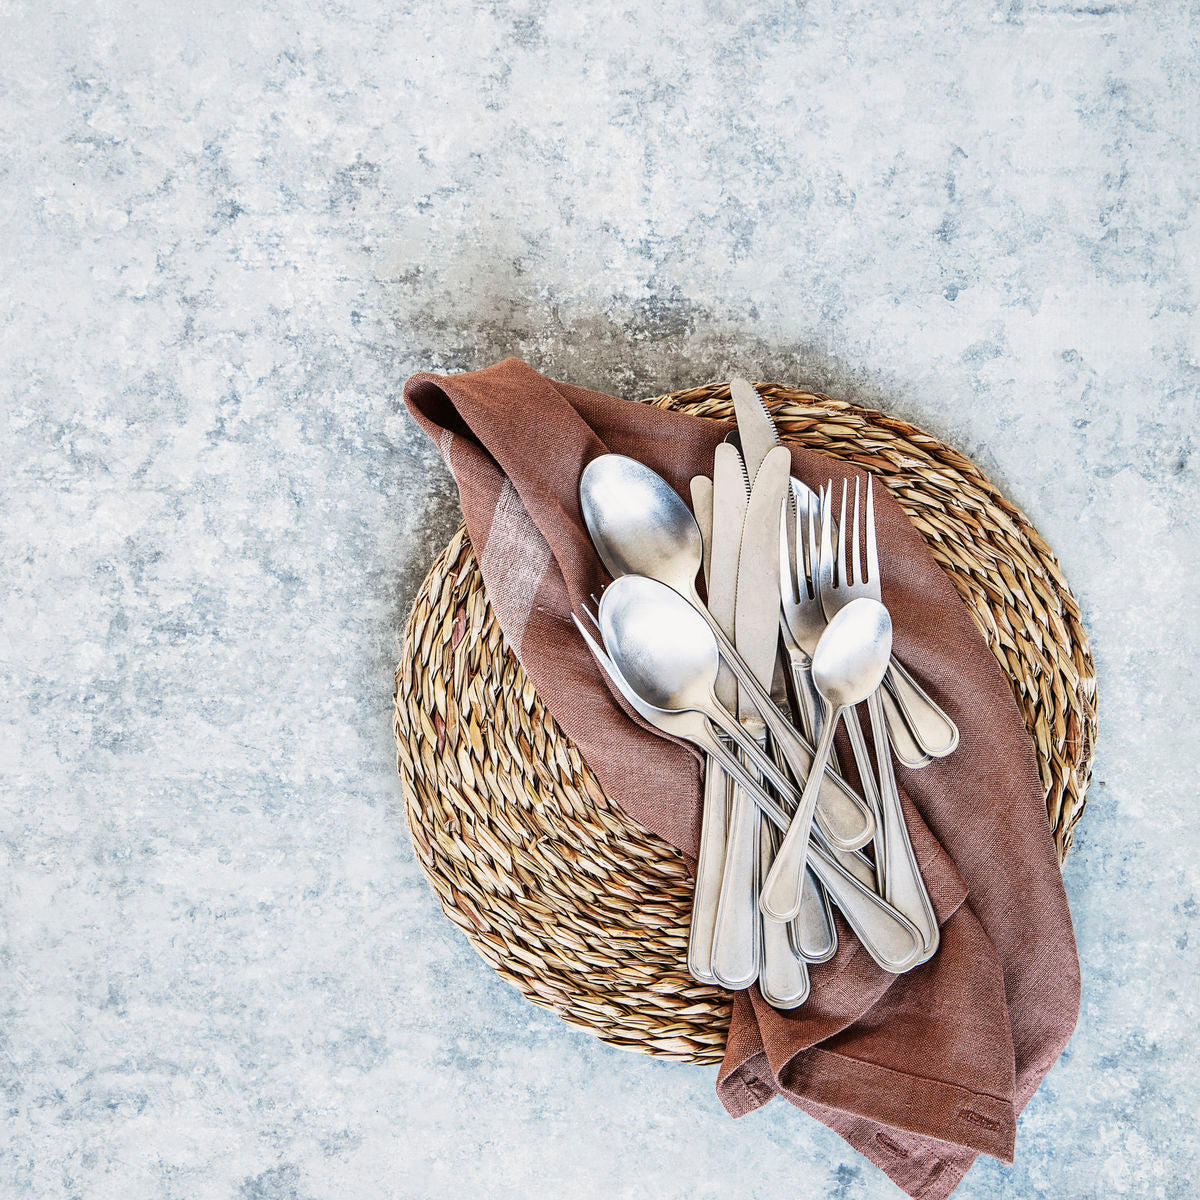 seagrass placemat under napkin with silverware